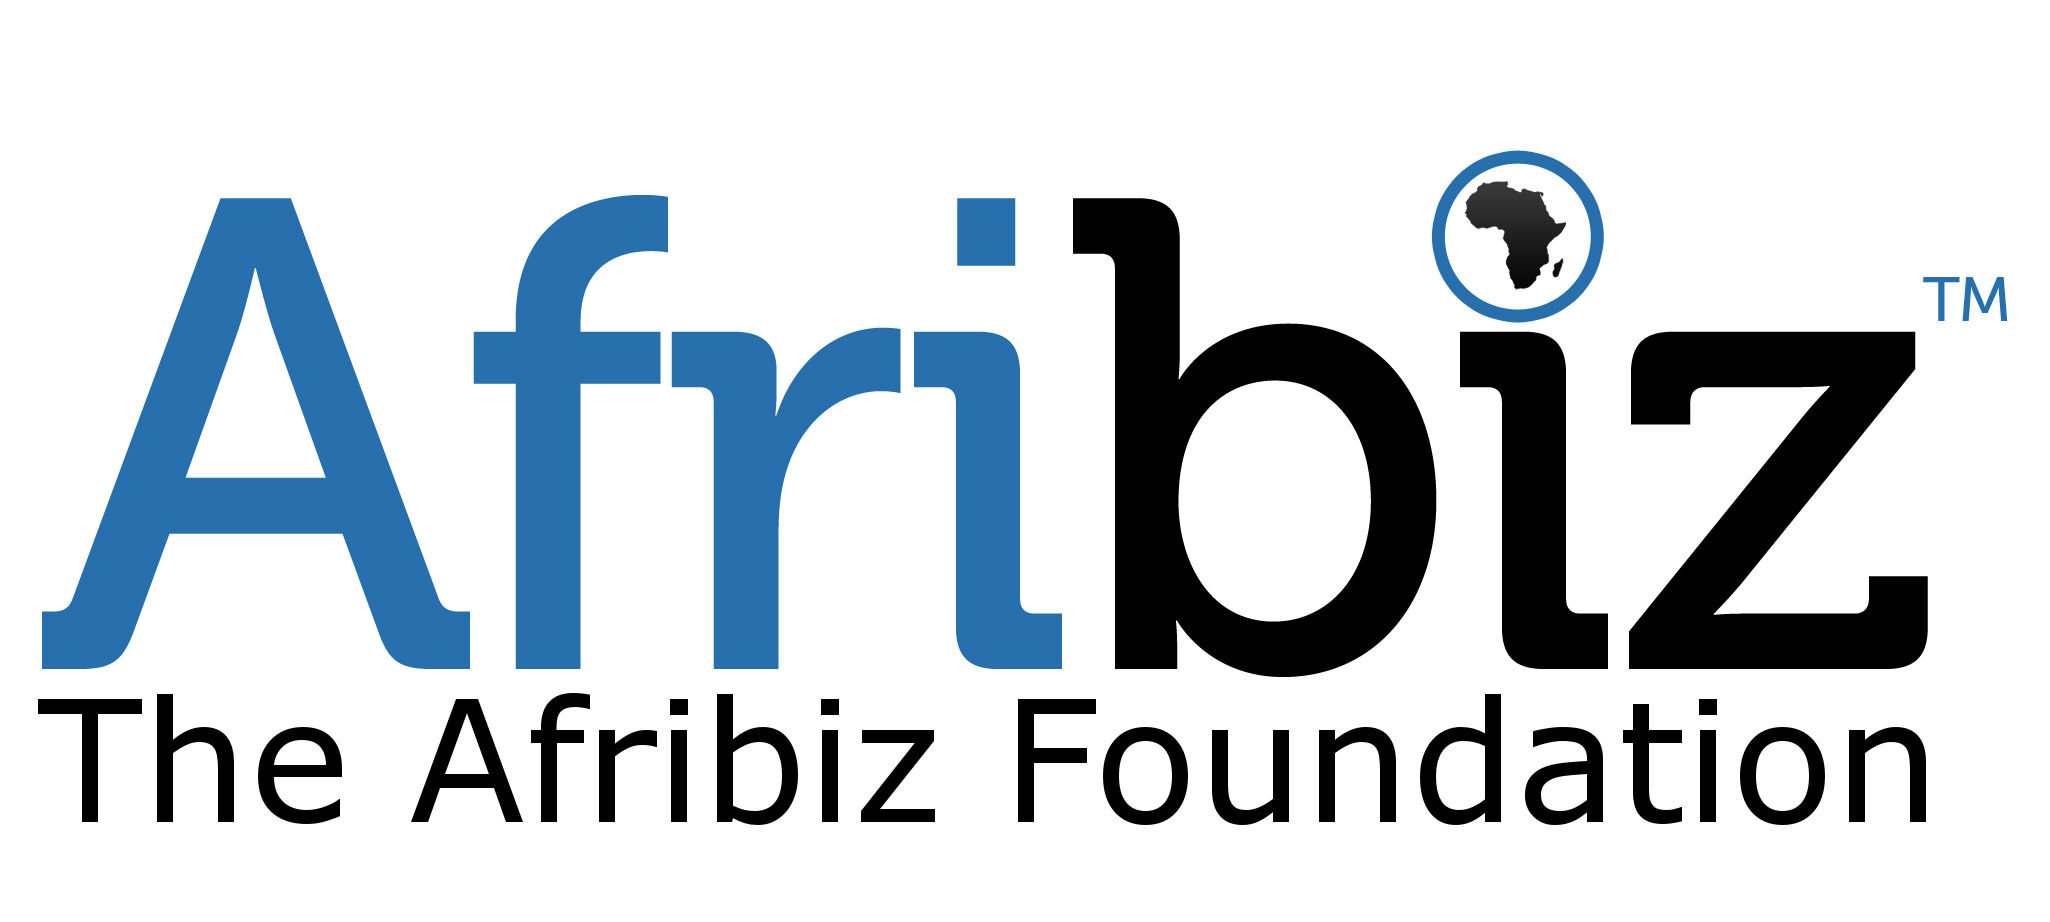 The Afribiz Foundation